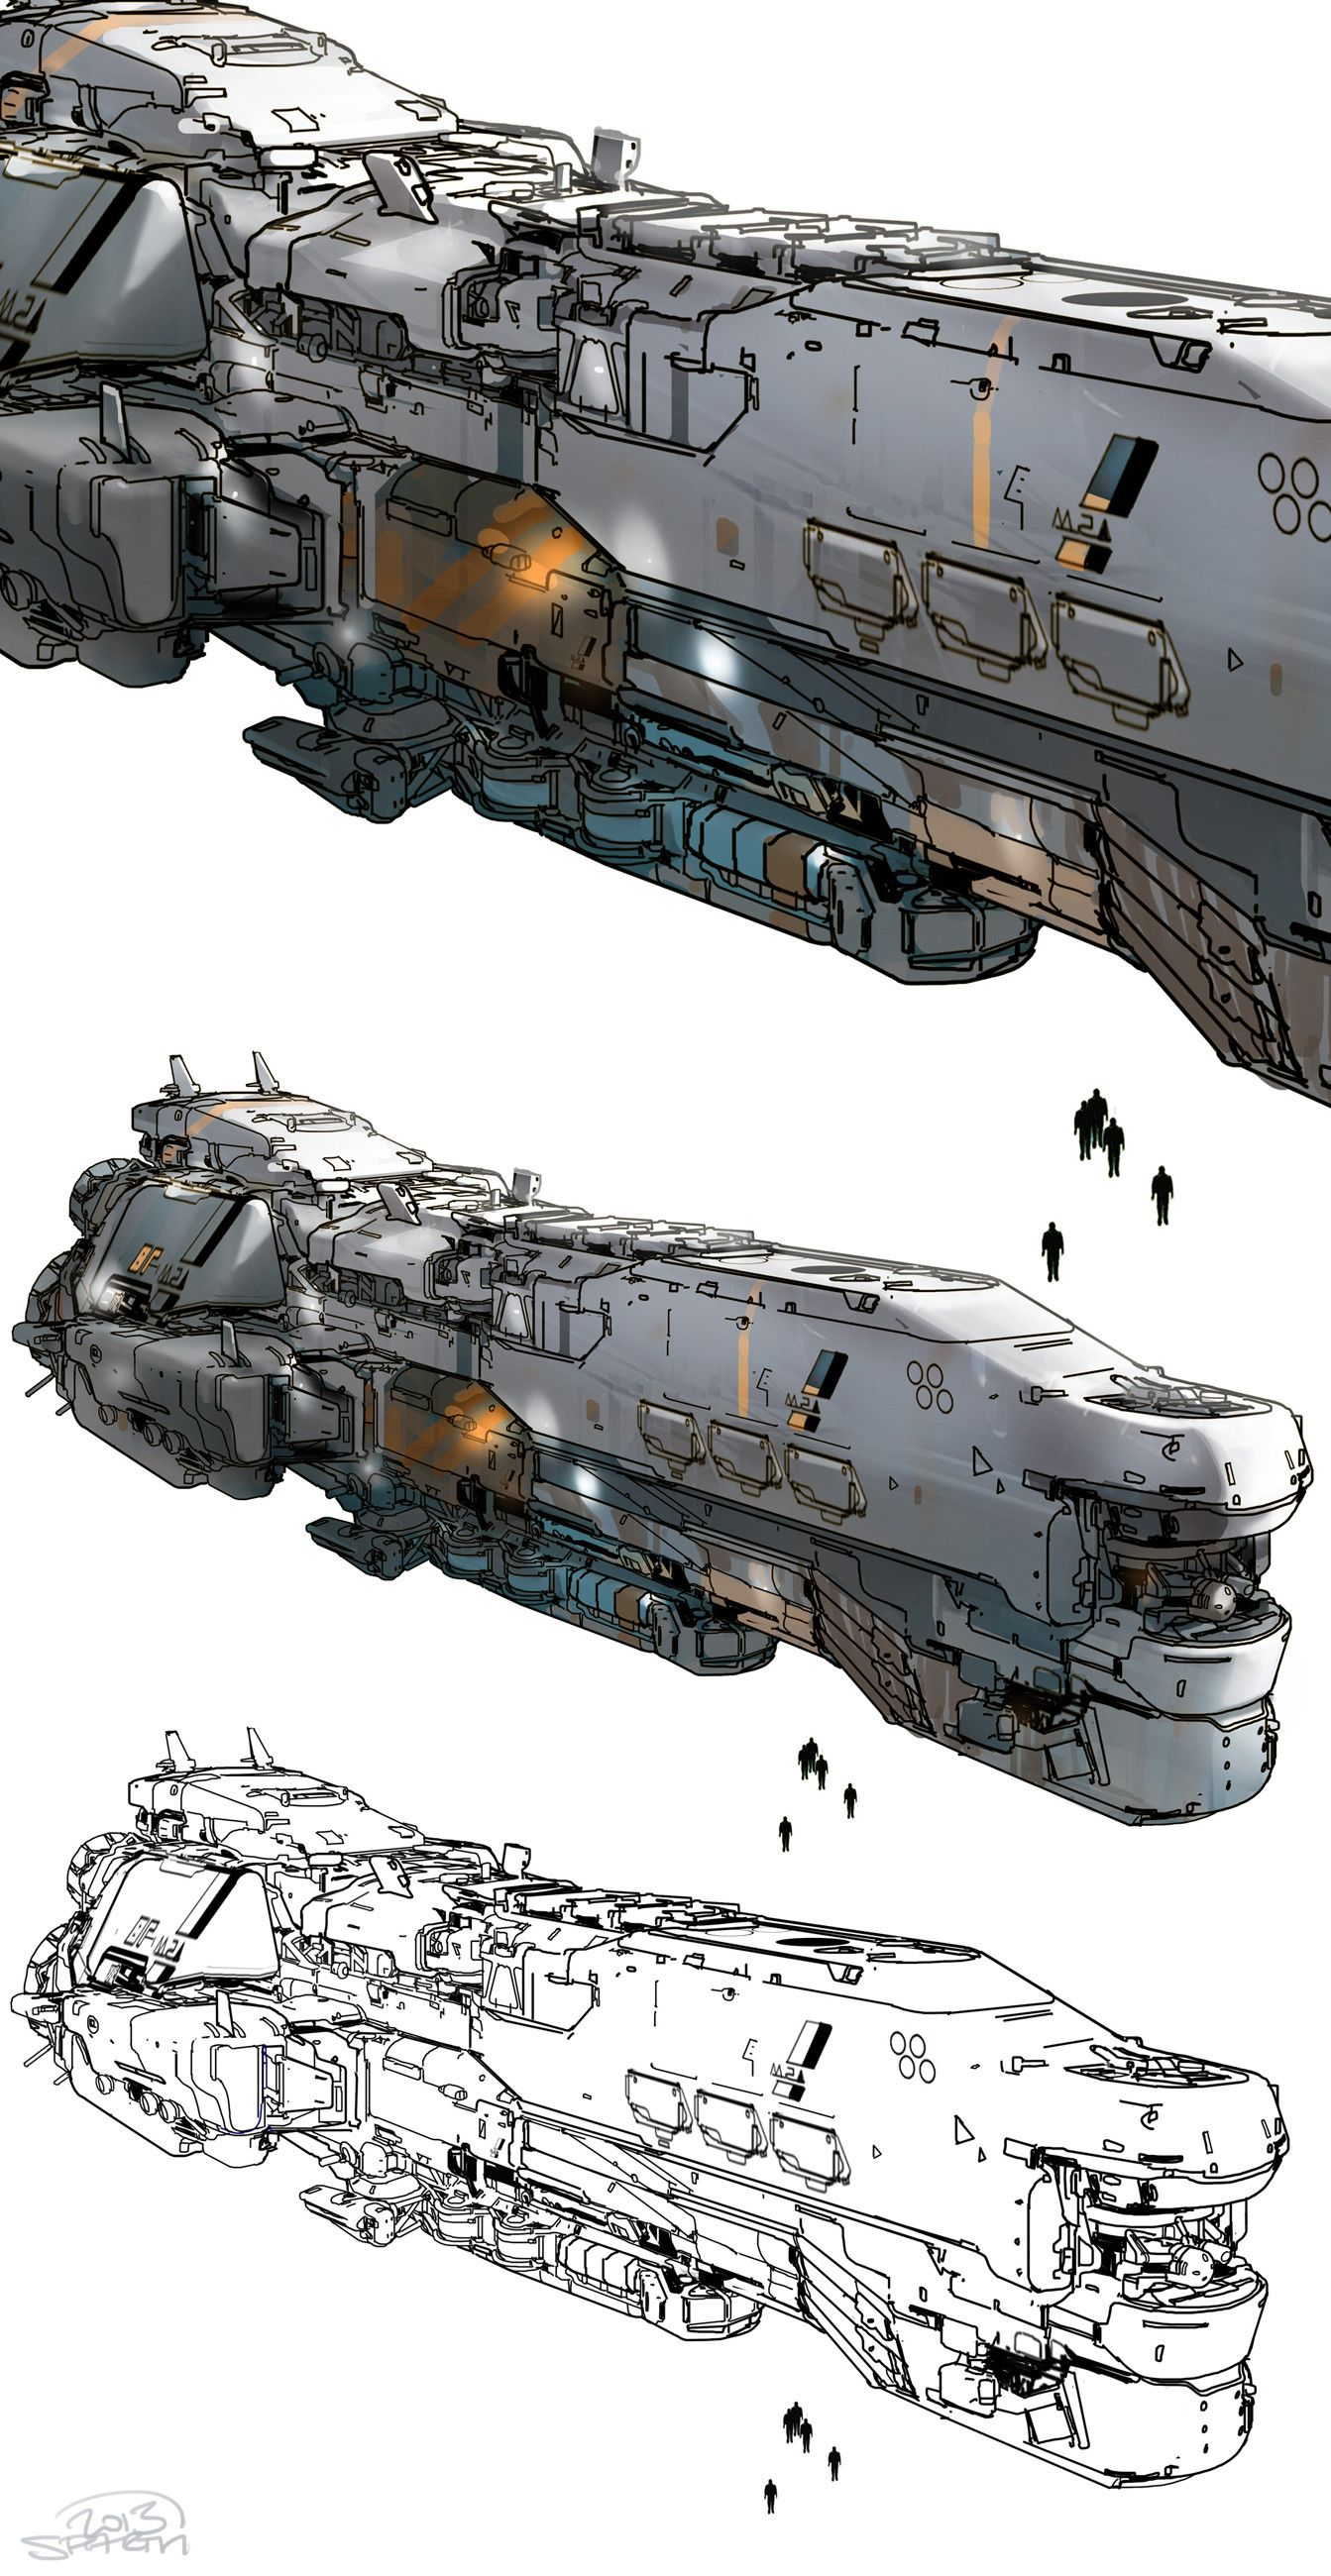 Artstation halo 5 meridian spaceship sparth for 11547 sunshine terrace